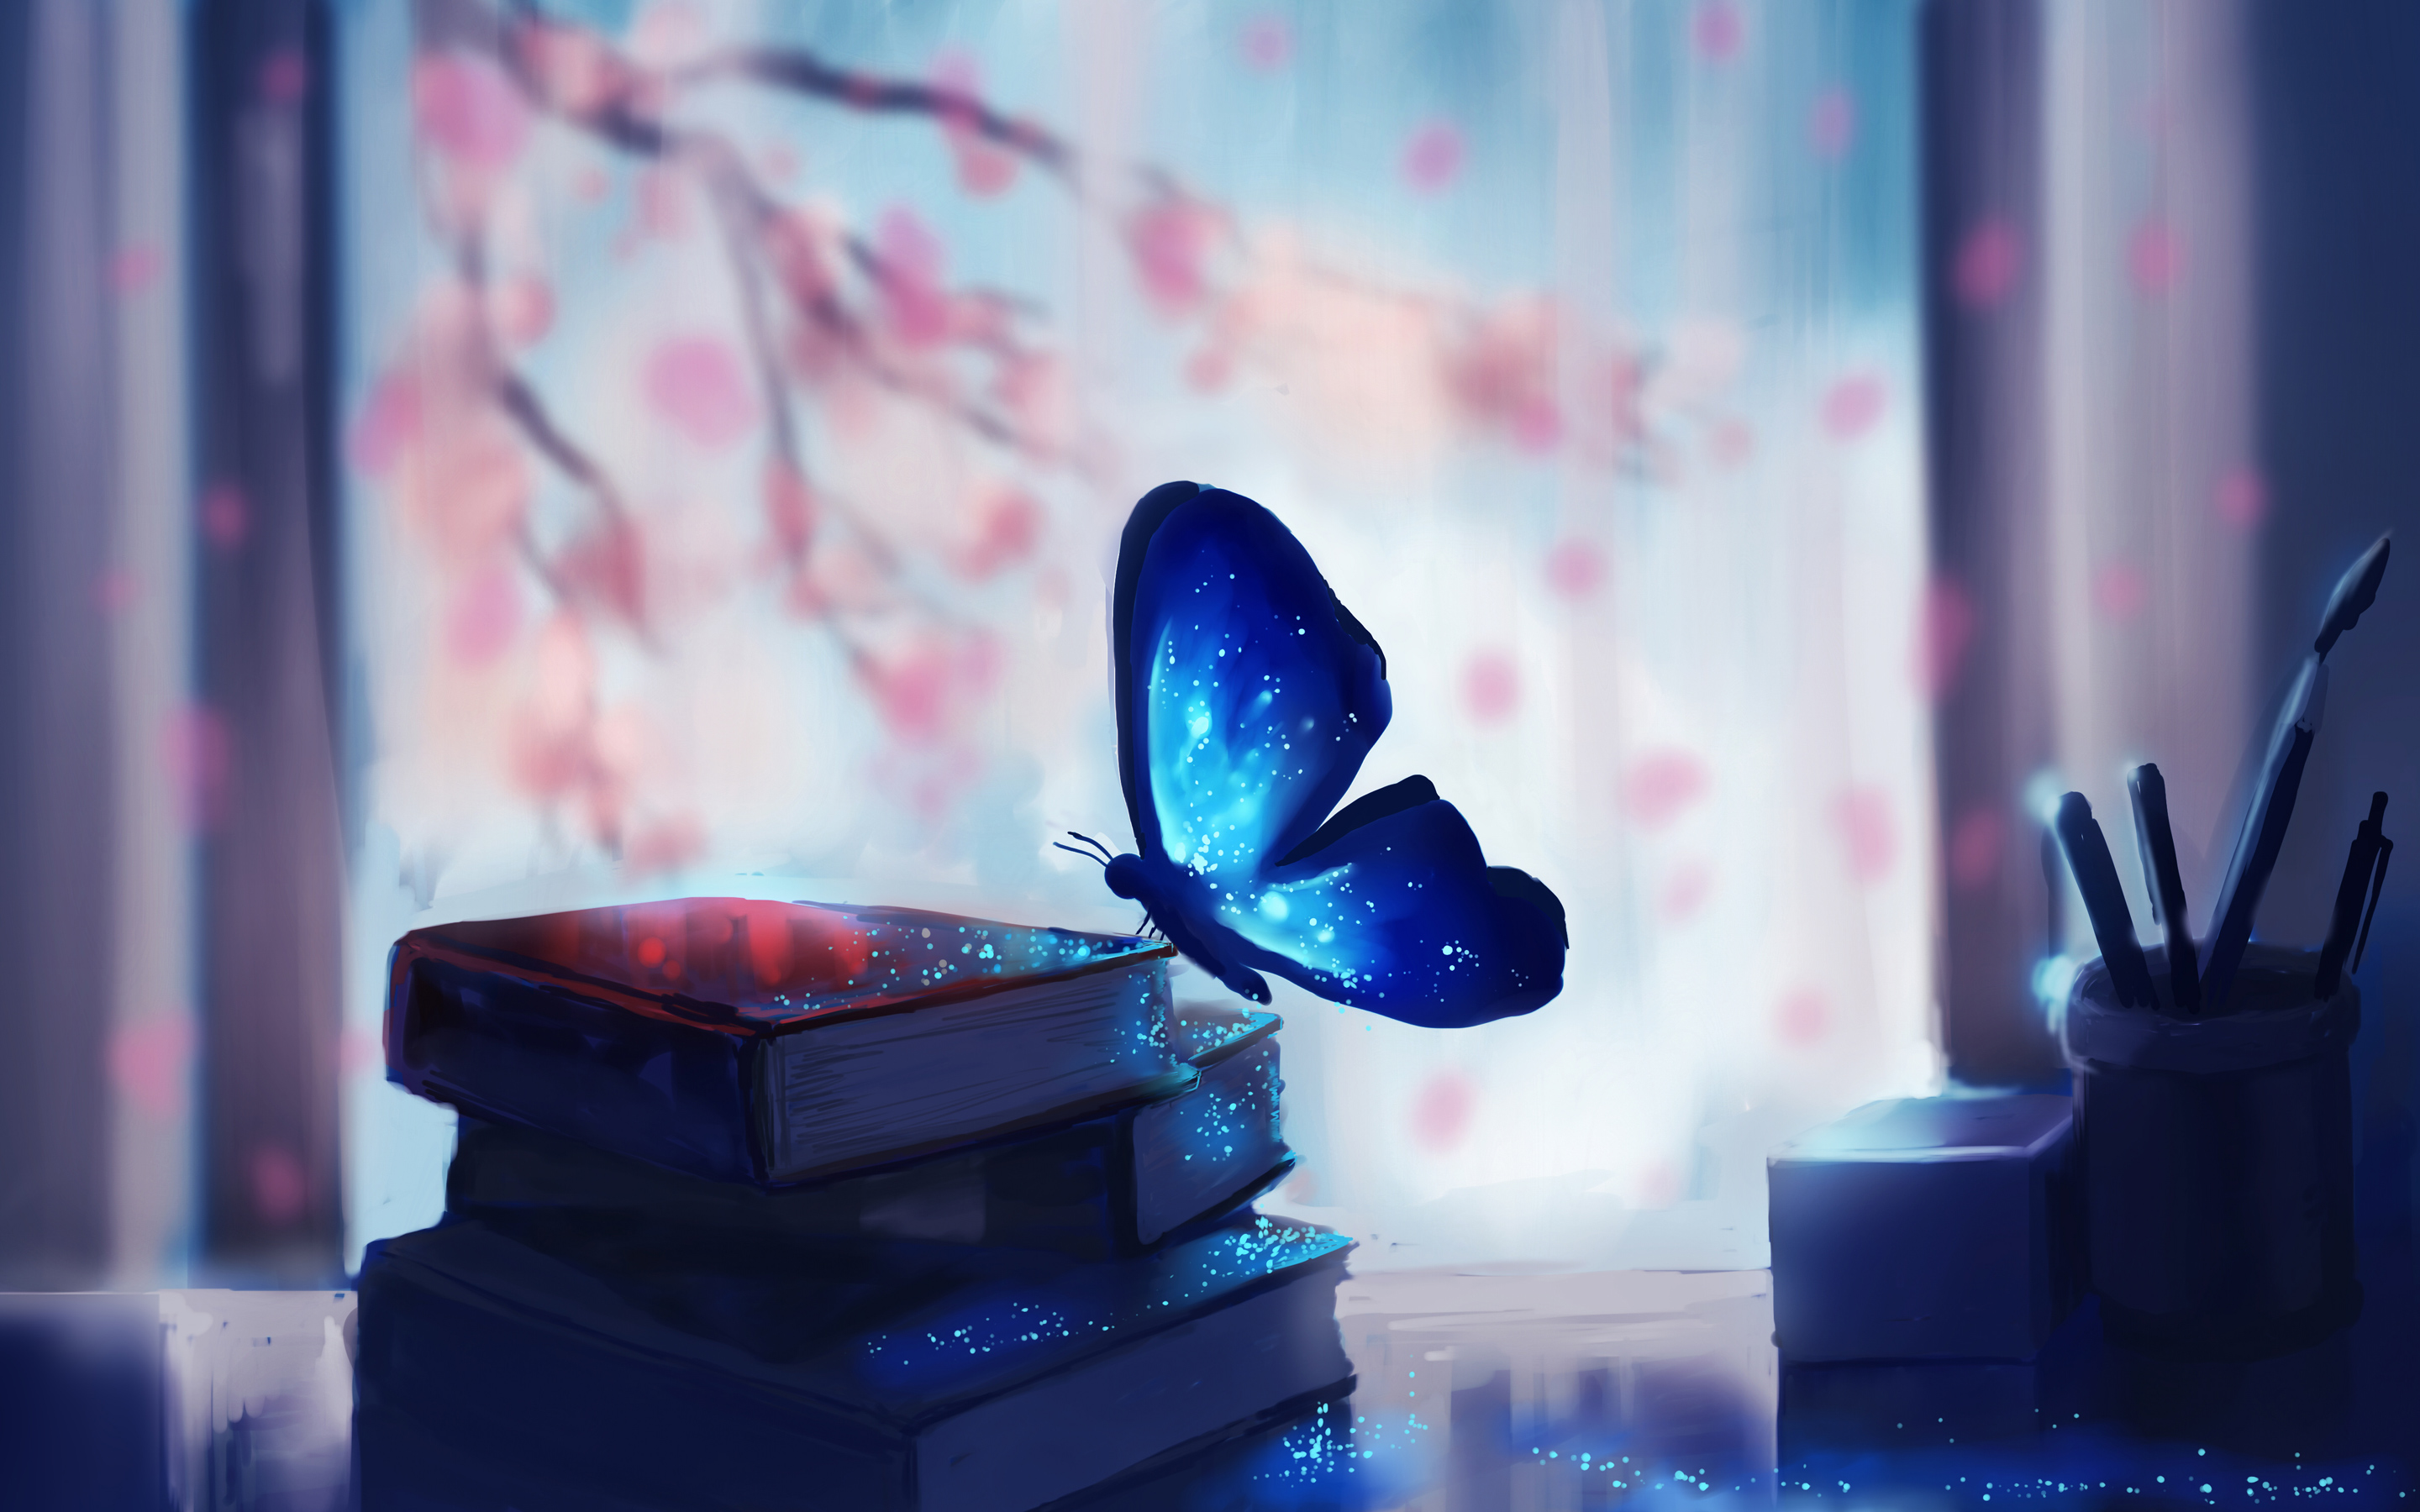 Blue Butterfly Books Art HD Wallpaper 2880x1800